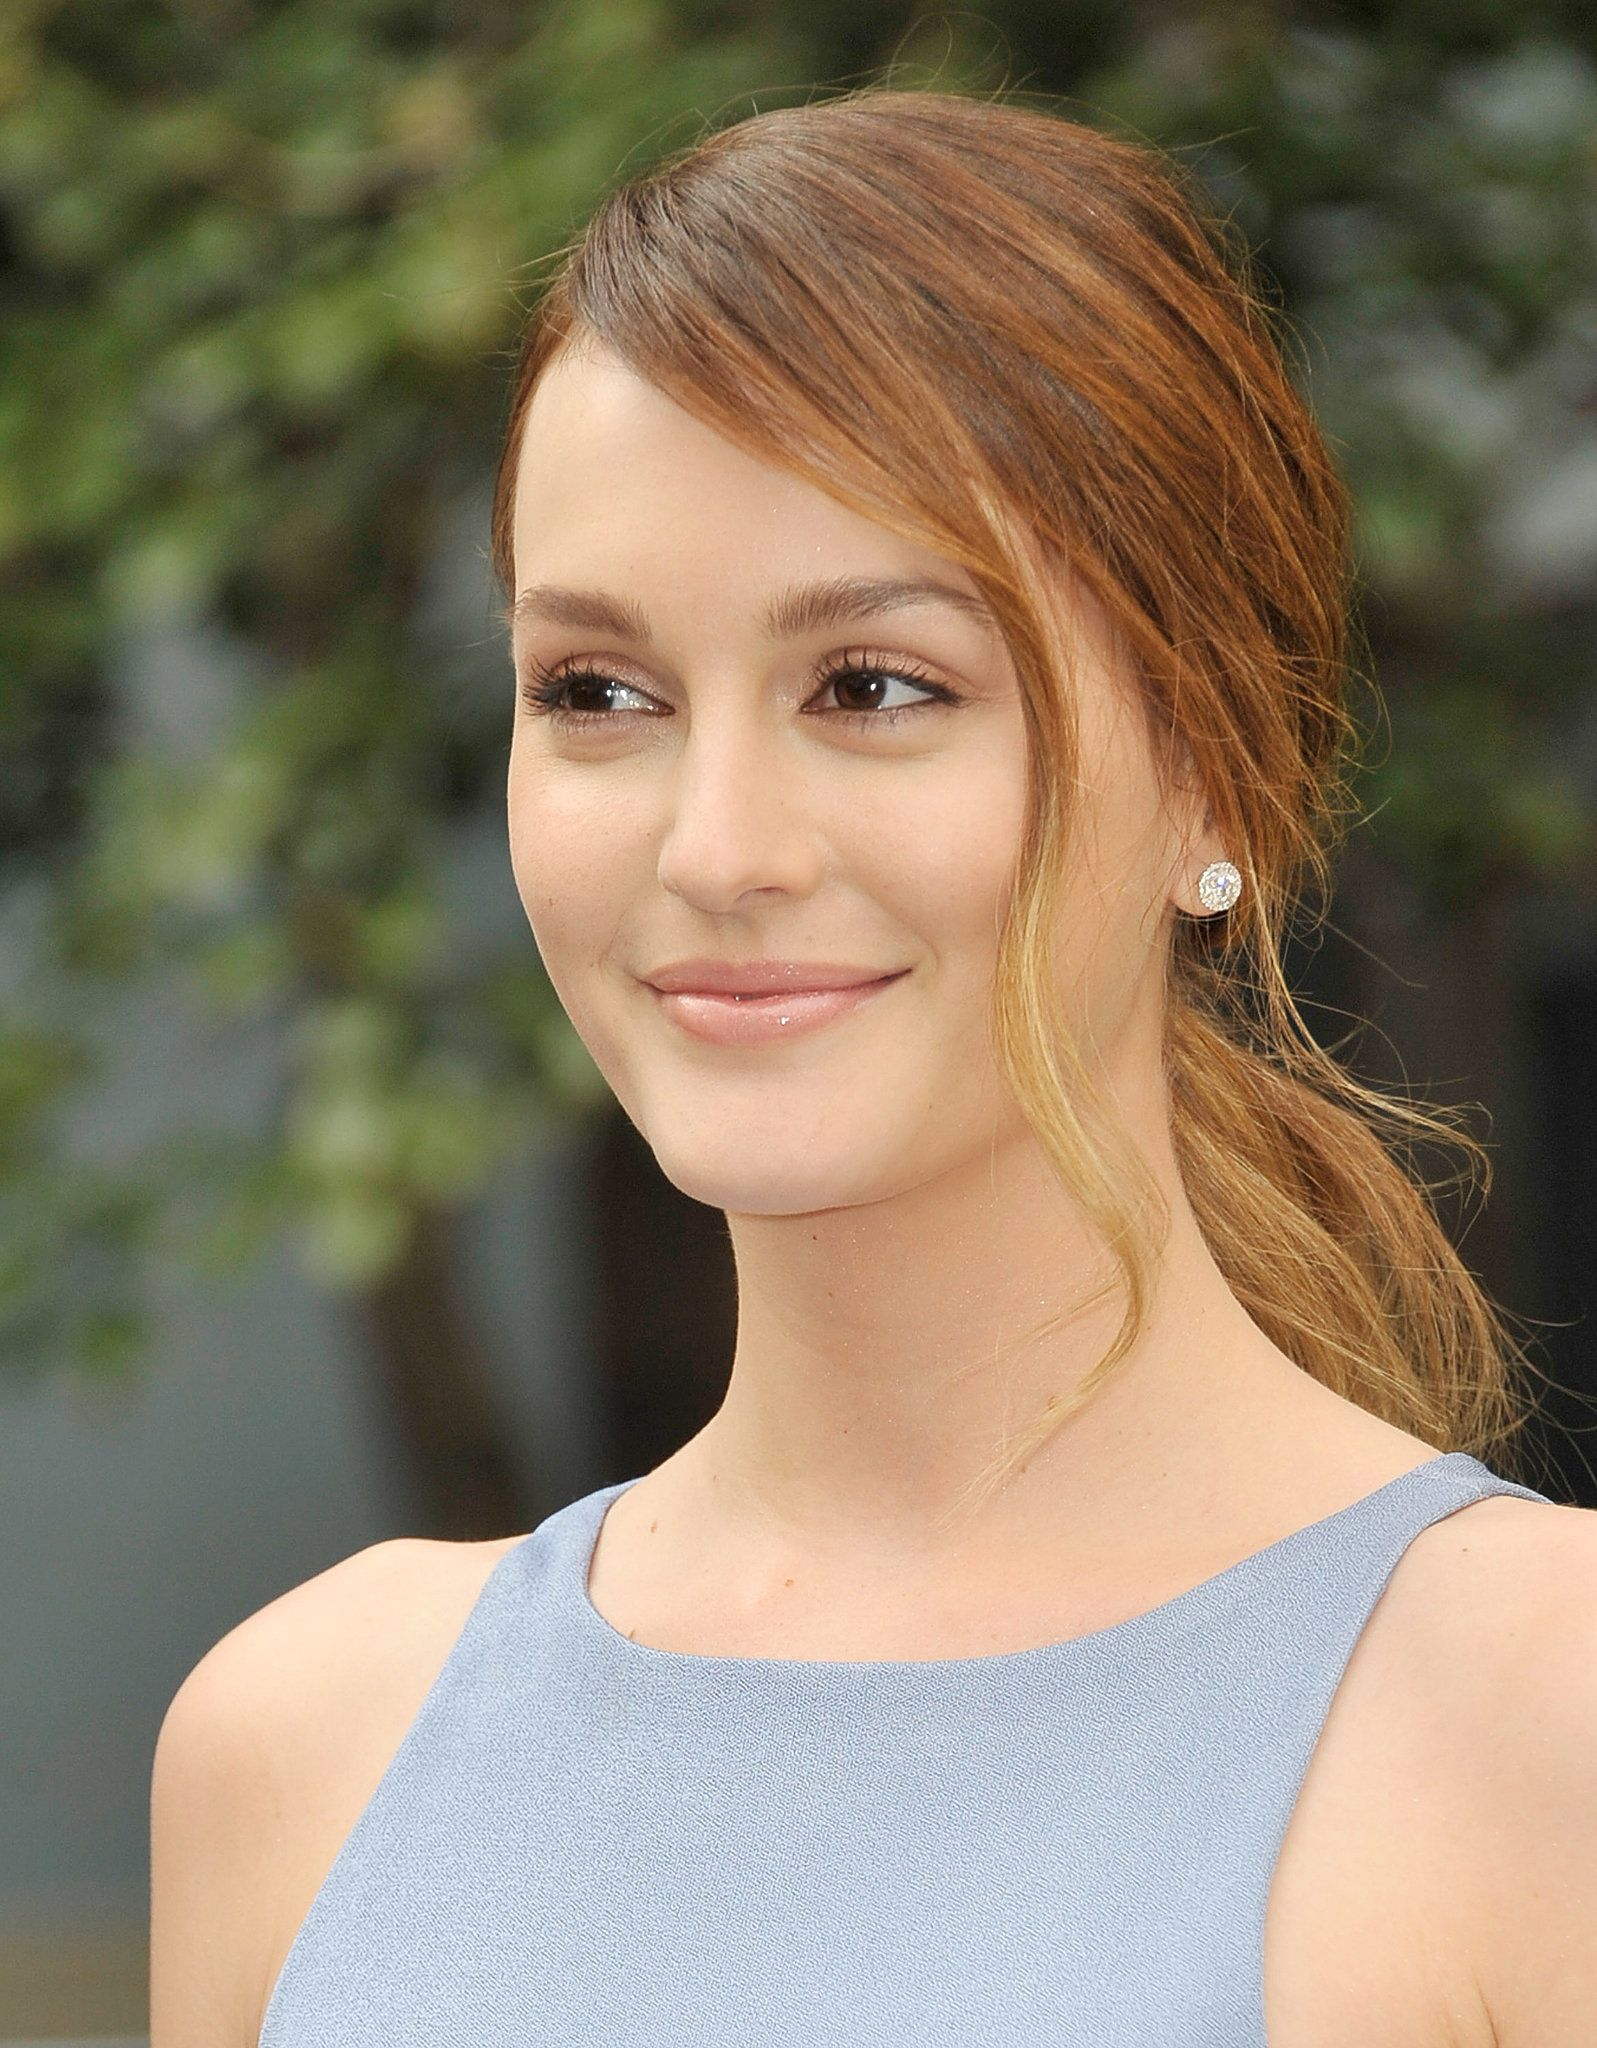 At the Life Partners screening at the Tribeca Film Festival, Leighton Meester was the picture of sunny springtime beauty.